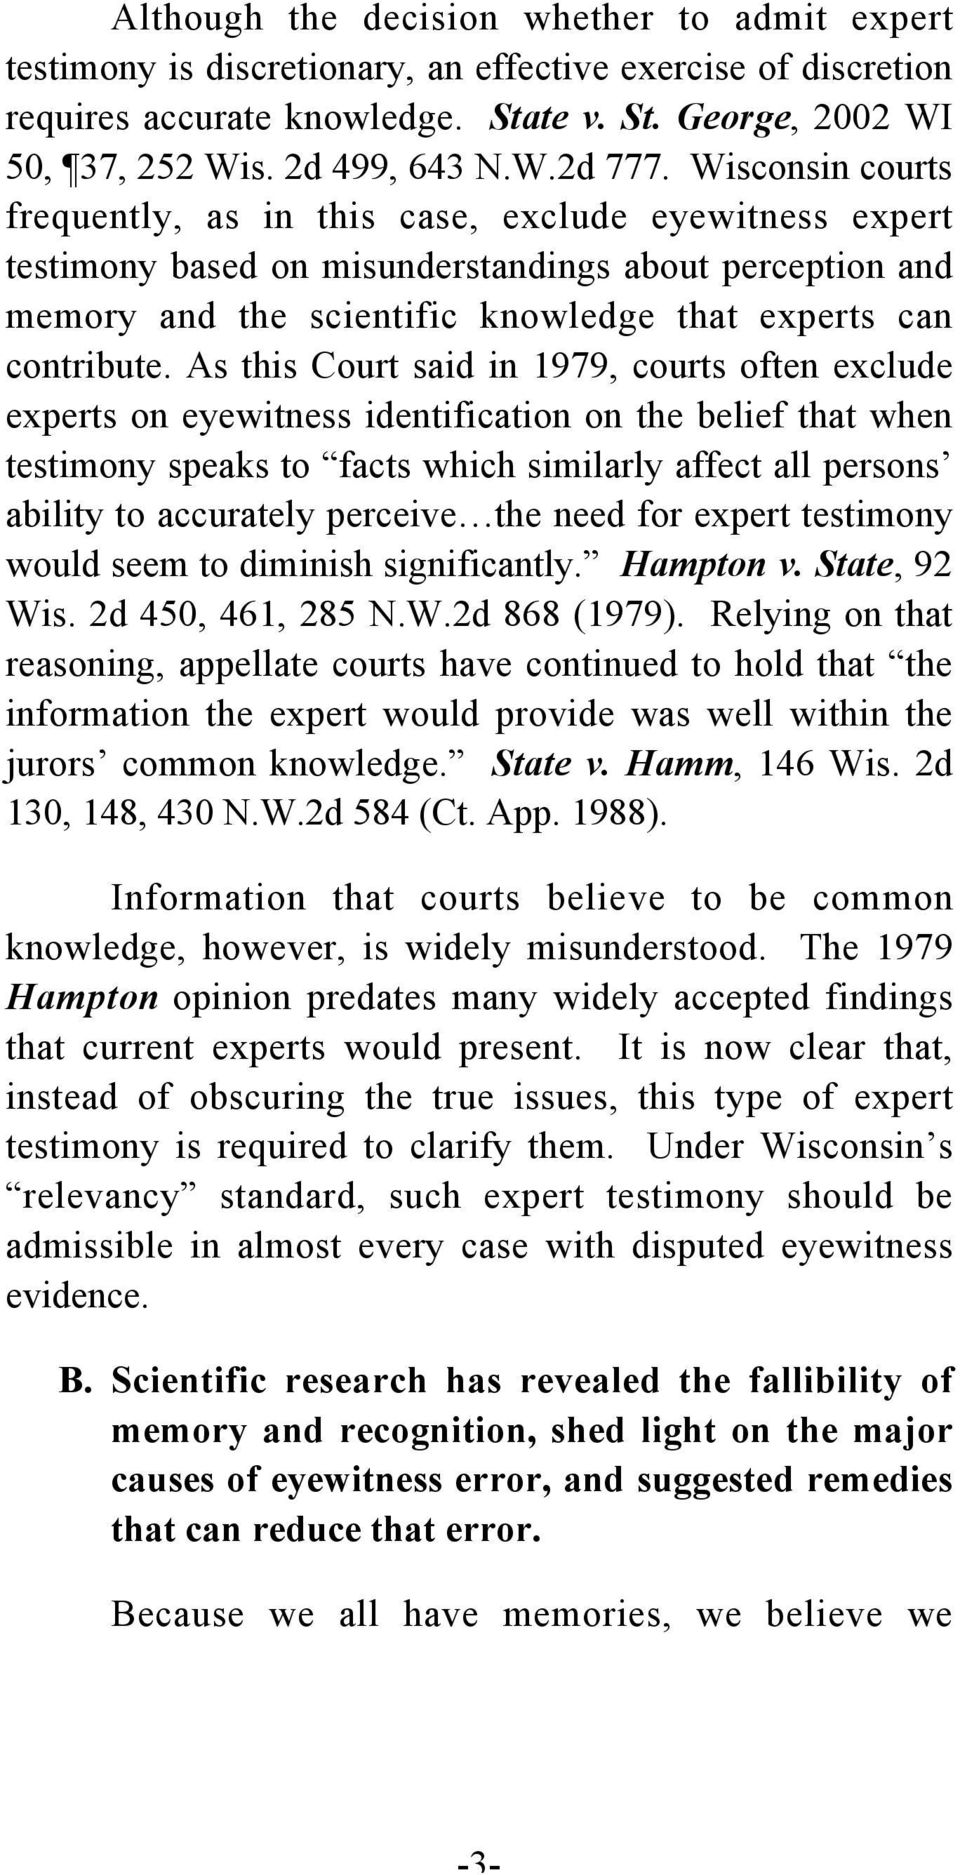 Wisconsin courts frequently, as in this case, exclude eyewitness expert testimony based on misunderstandings about perception and memory and the scientific knowledge that experts can contribute.